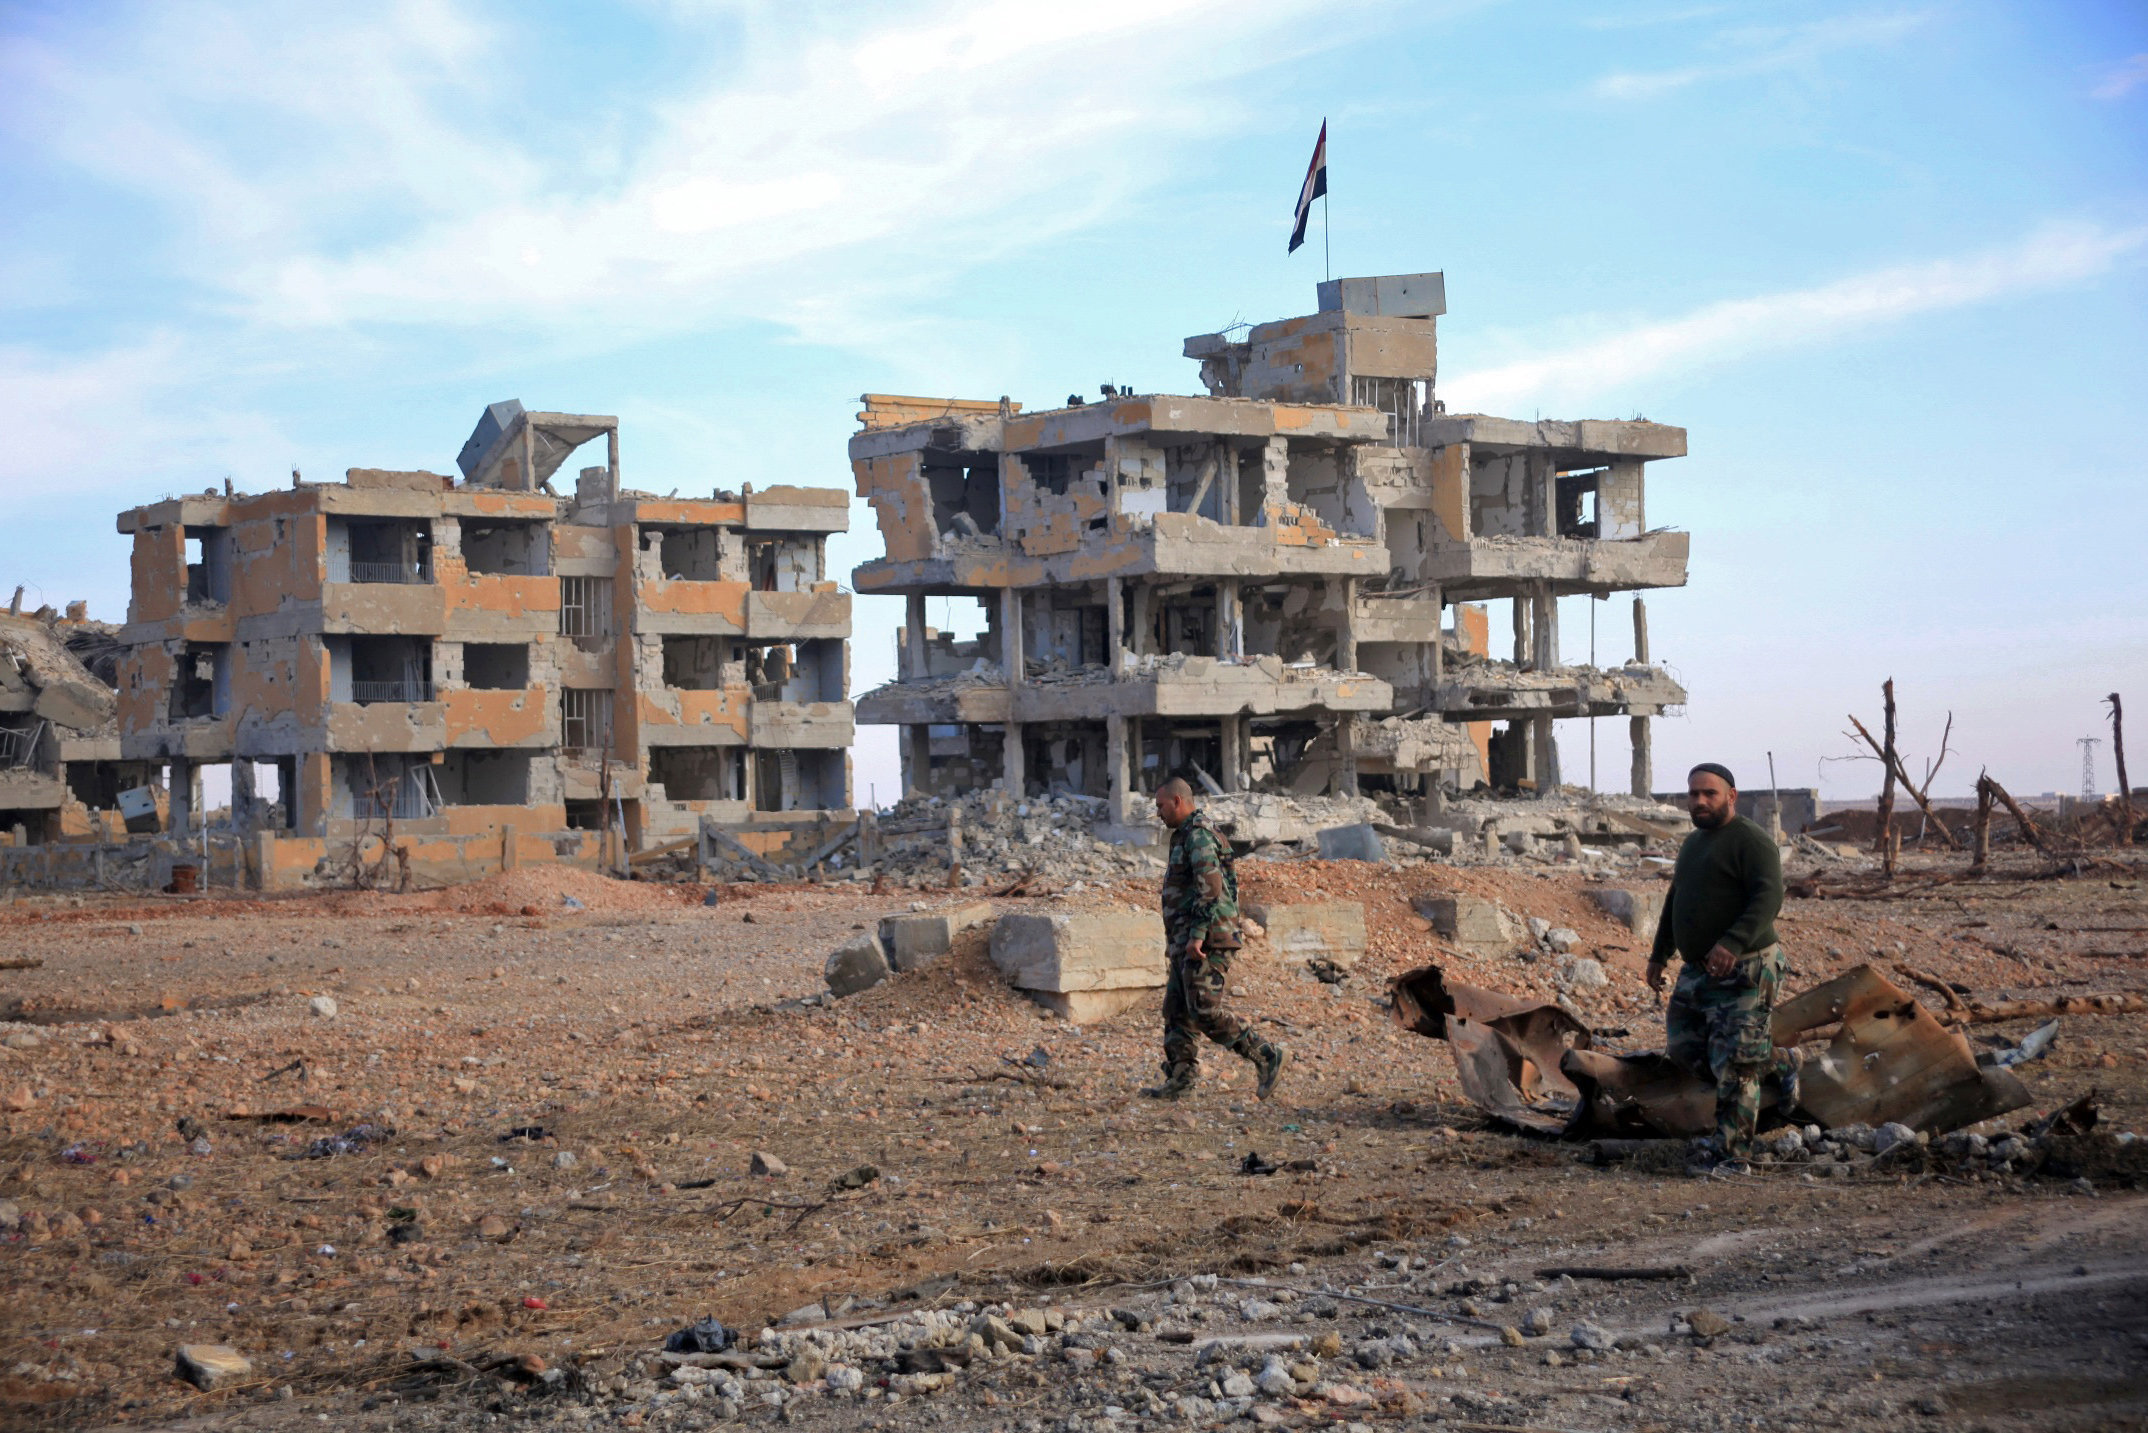 Syrian army soldiers patrol the countryside of Deir Hafer, a former bastion of Daesh, near the northern Syrian city of Aleppo on December 2, 2015